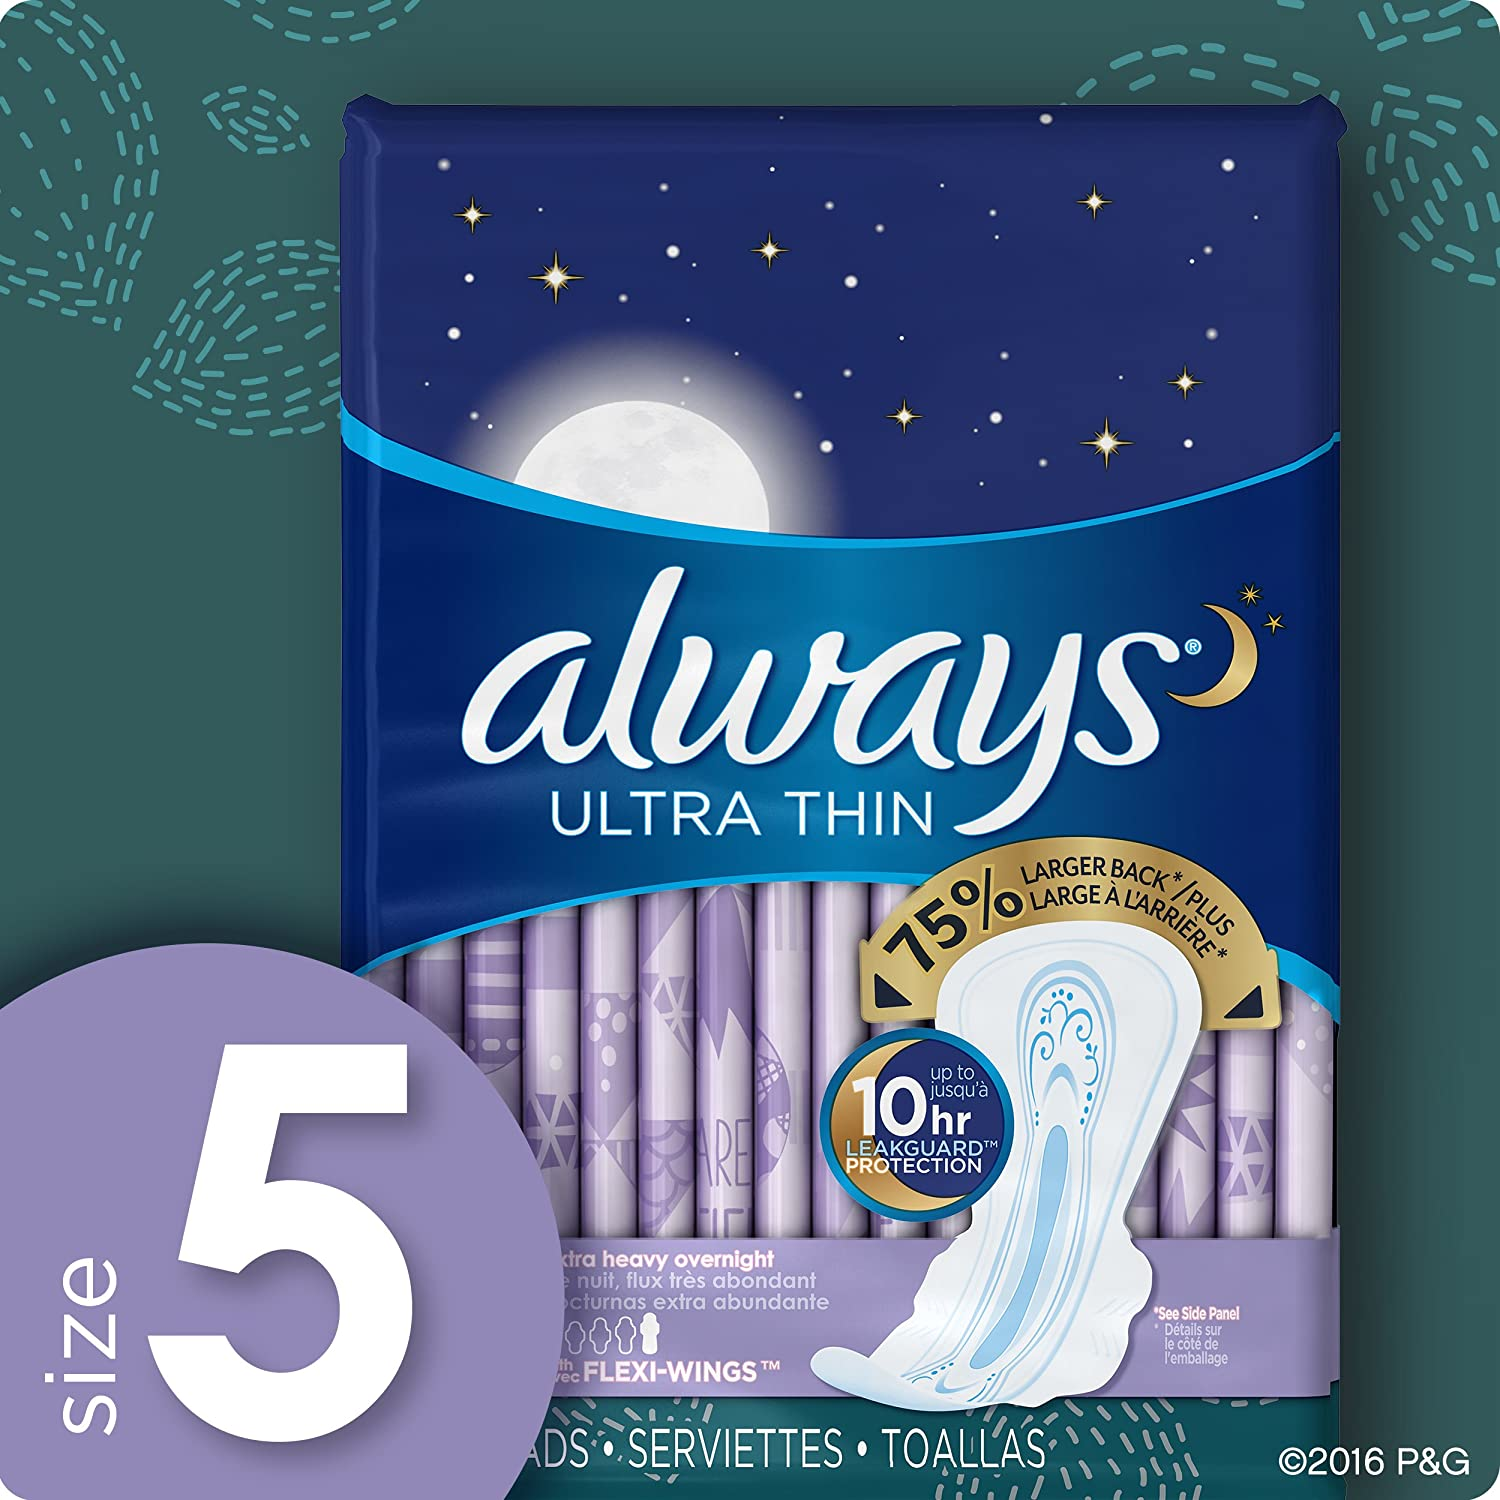 Amazon.com: Always Ultra Thin Feminine Pads for Women, Size 5, Extra Heavy, Overnight Absorbency, with Flexi-Wings, Unscented, 46 Count-Pack of 4 (184 Count ...